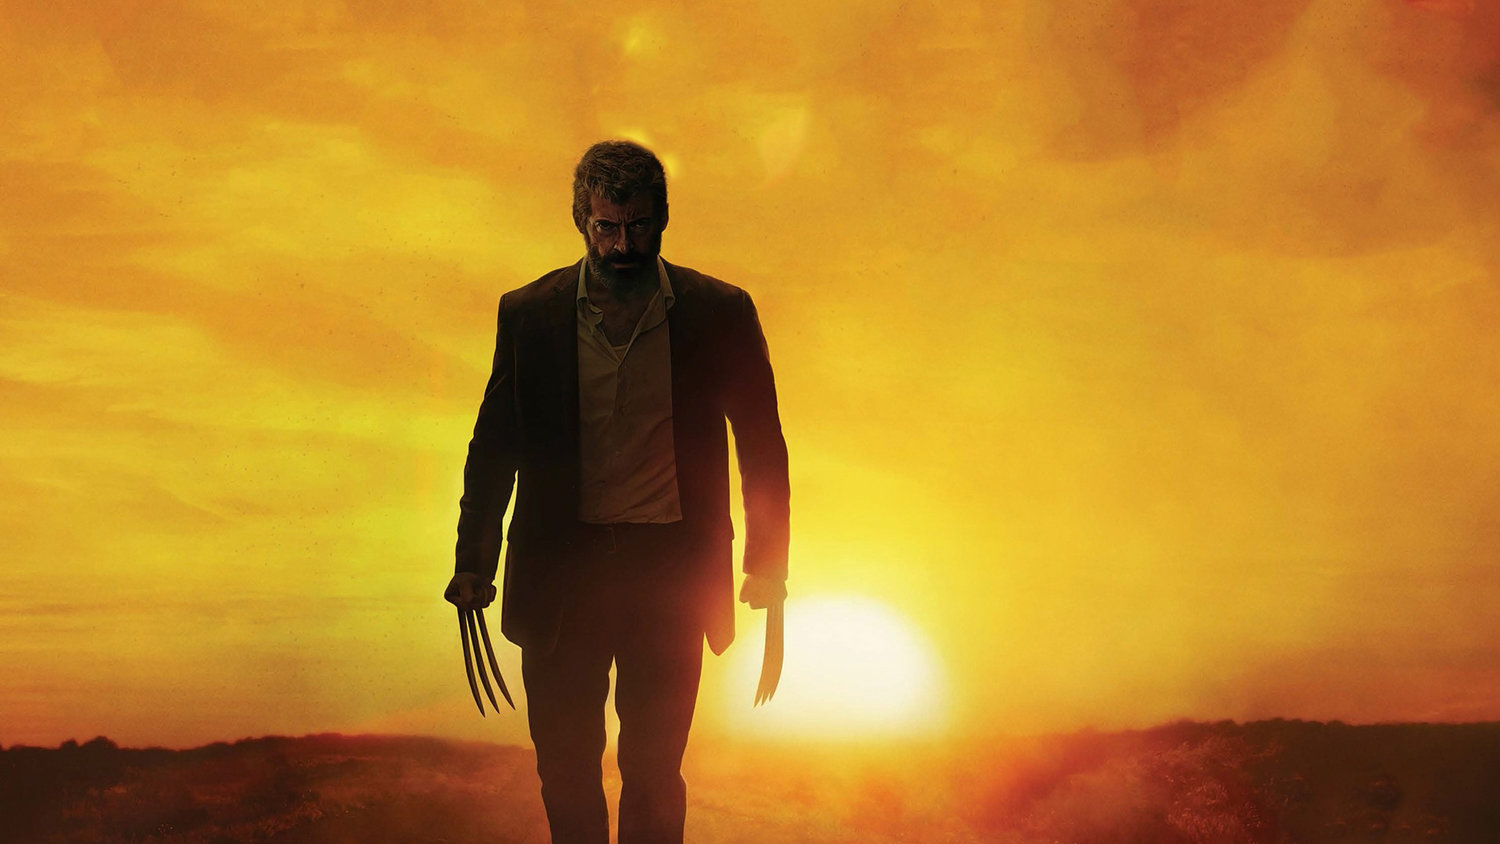 LOGAN Contains Reference to Classic X-MEN Villain